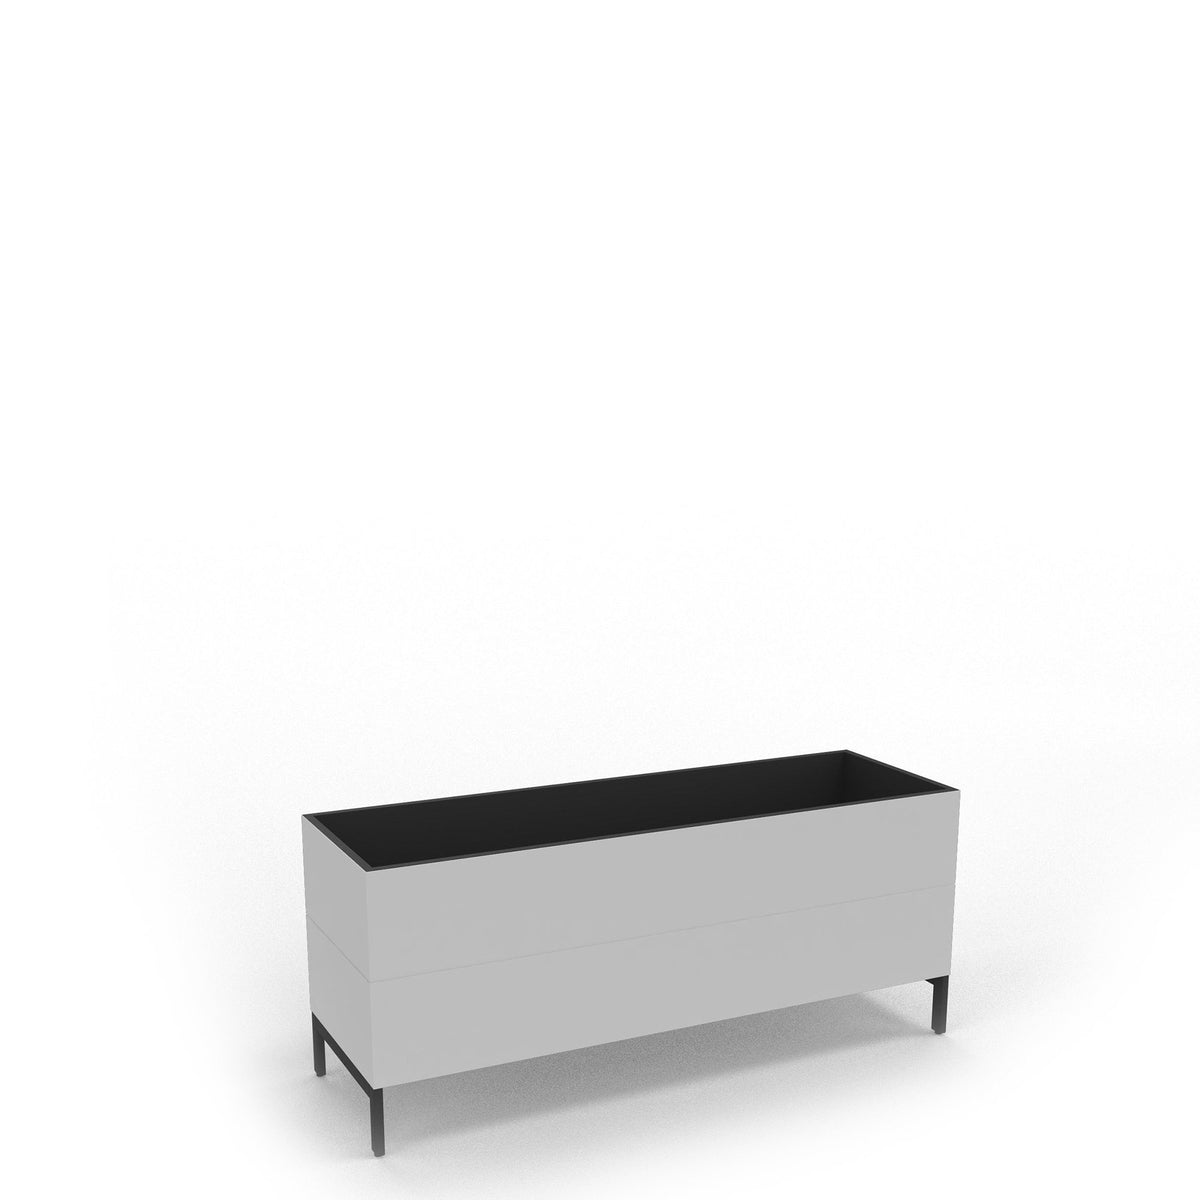 Edsbyn Office Neat Green Planter Box with Black Base 1200mm White